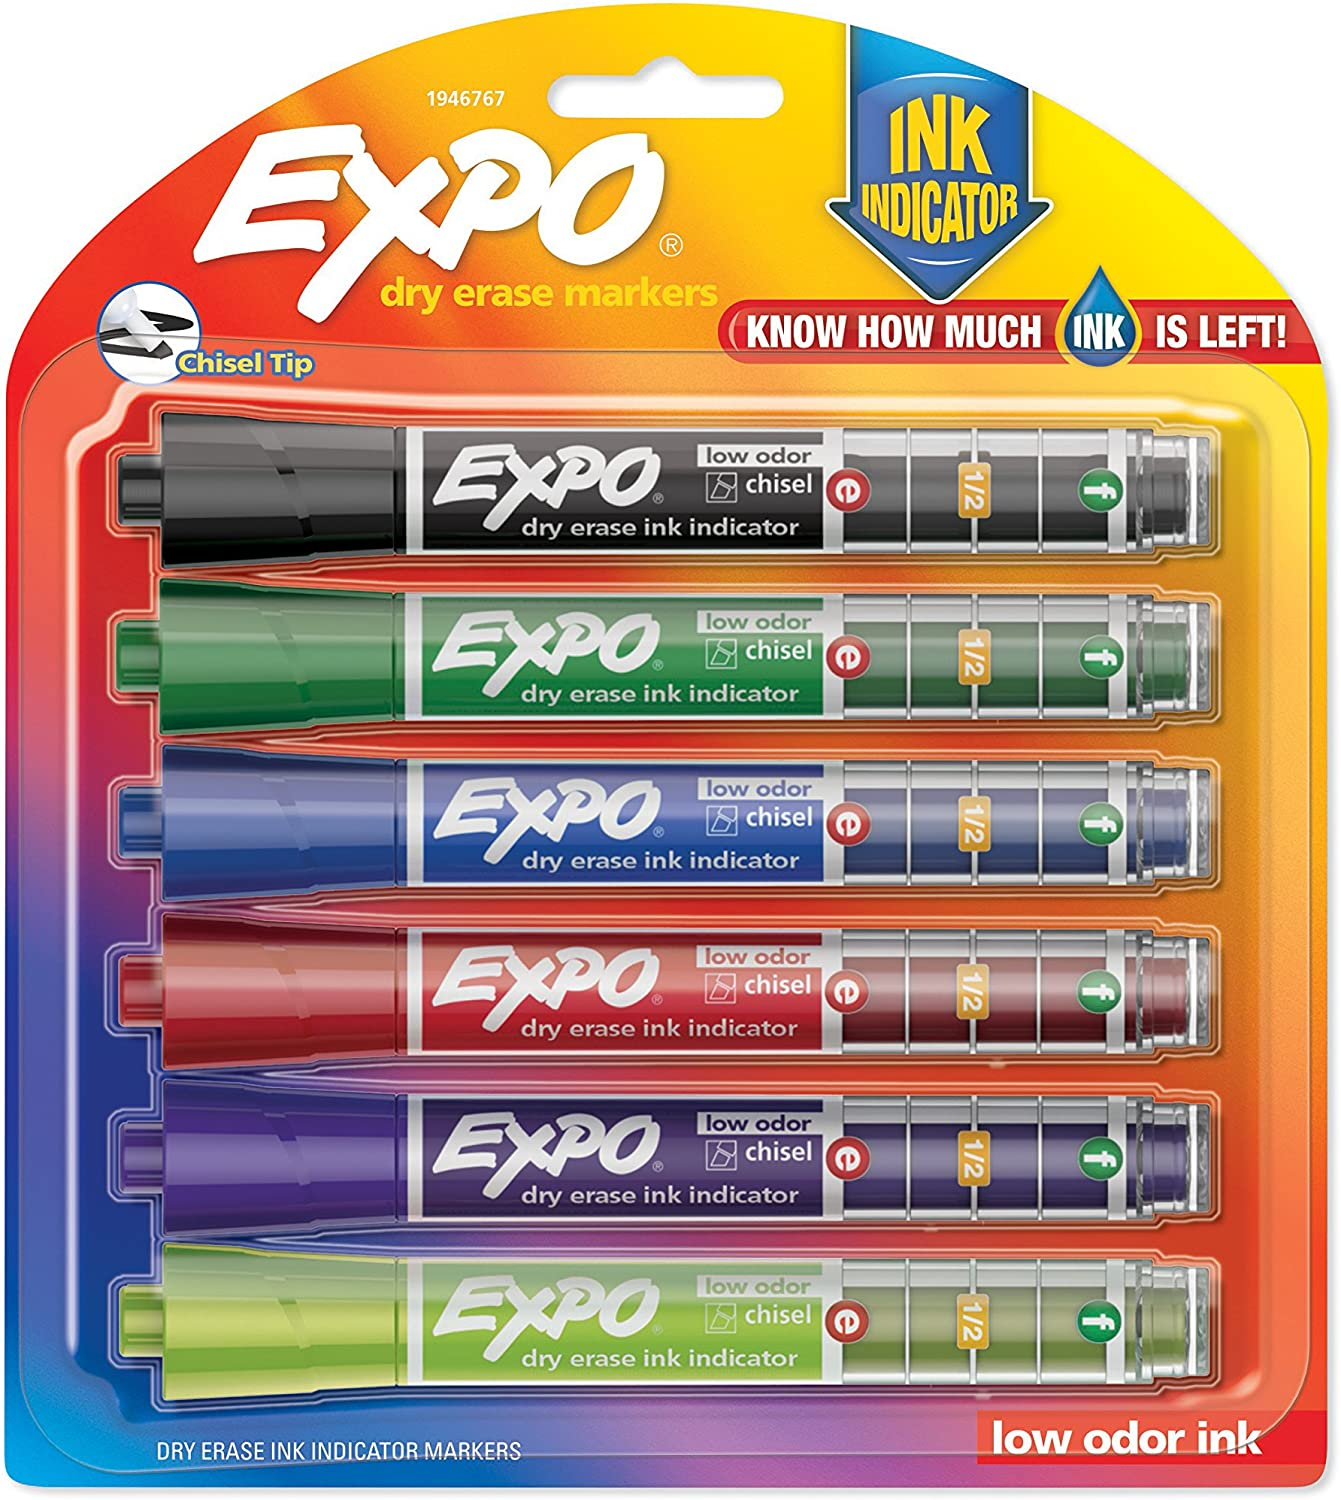 EXPO Super beauty product restock quality top Dry Erase Markers with Indicator Assorted Sales results No. 1 Chisel Tip Ink